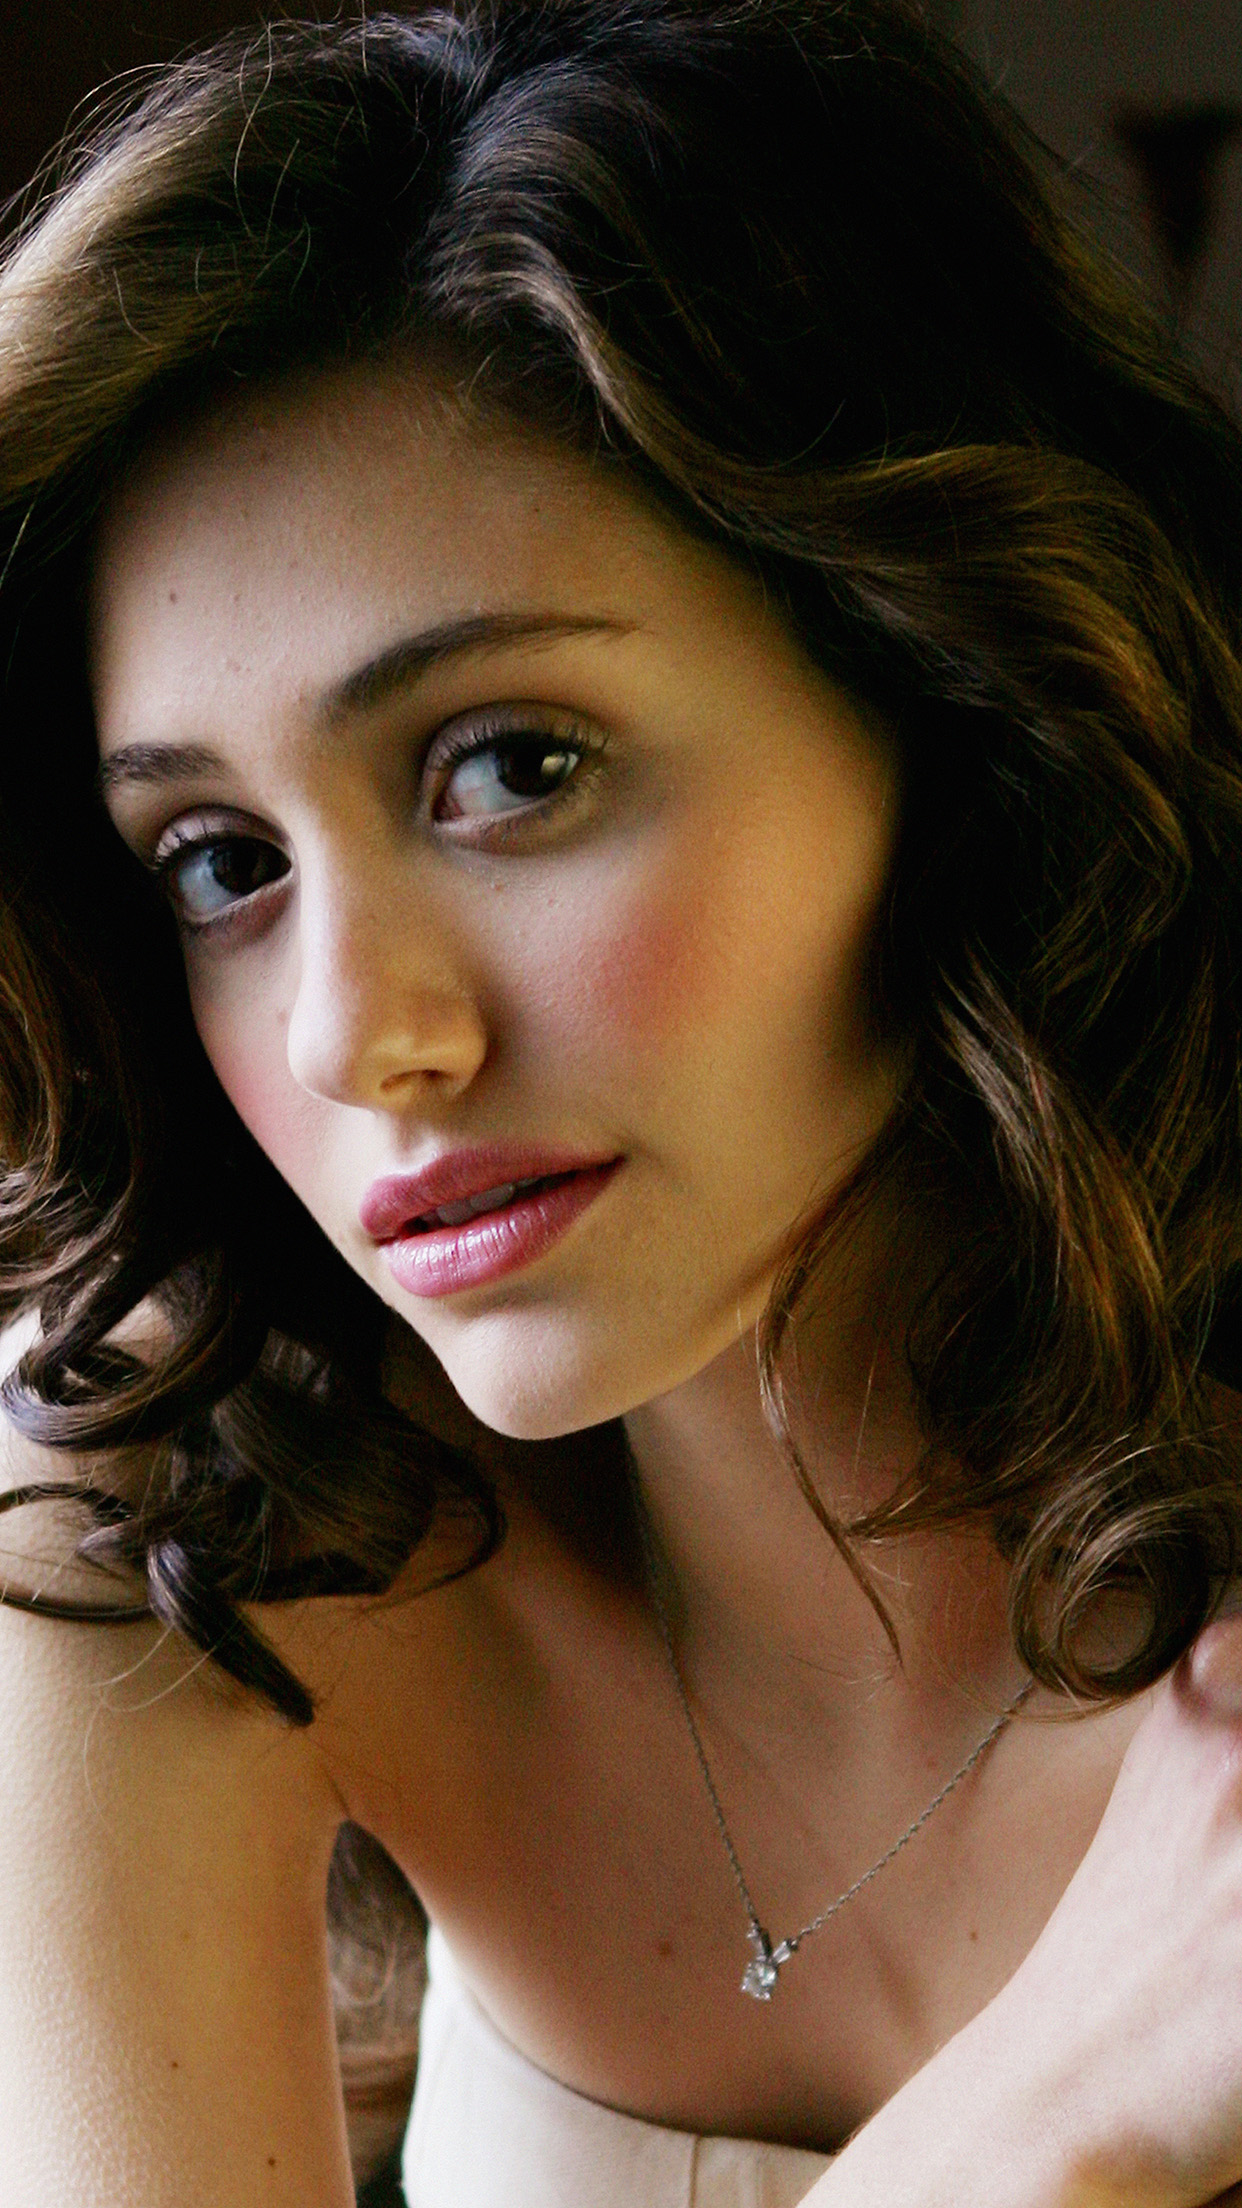 Girl Wallpaper Hd 2018 Papers Co Iphone Wallpaper Hk61 Emmy Rossum Actress